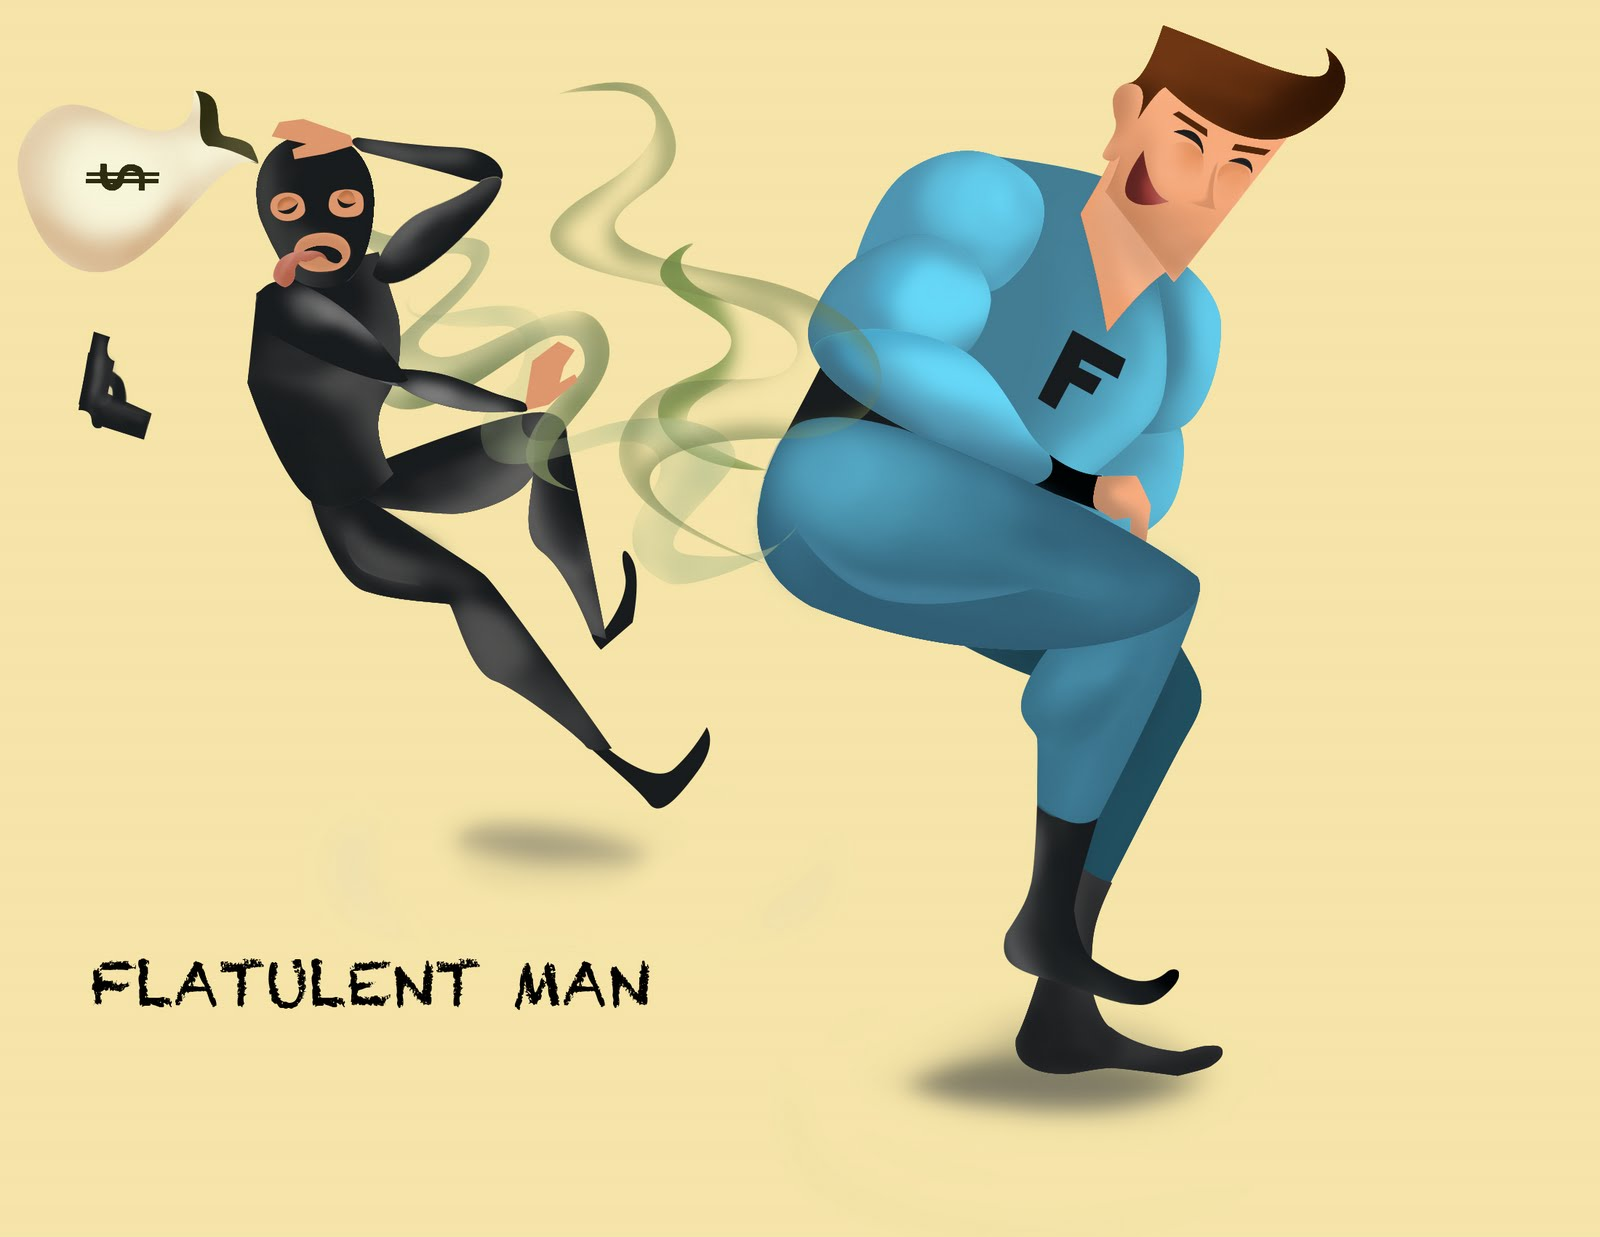 Hi Guys, So This Is Flatulent Man, One Of His Specialty Is To Run Up To A  Criminal And Let A Big One Loose, Thus Saving The Day.